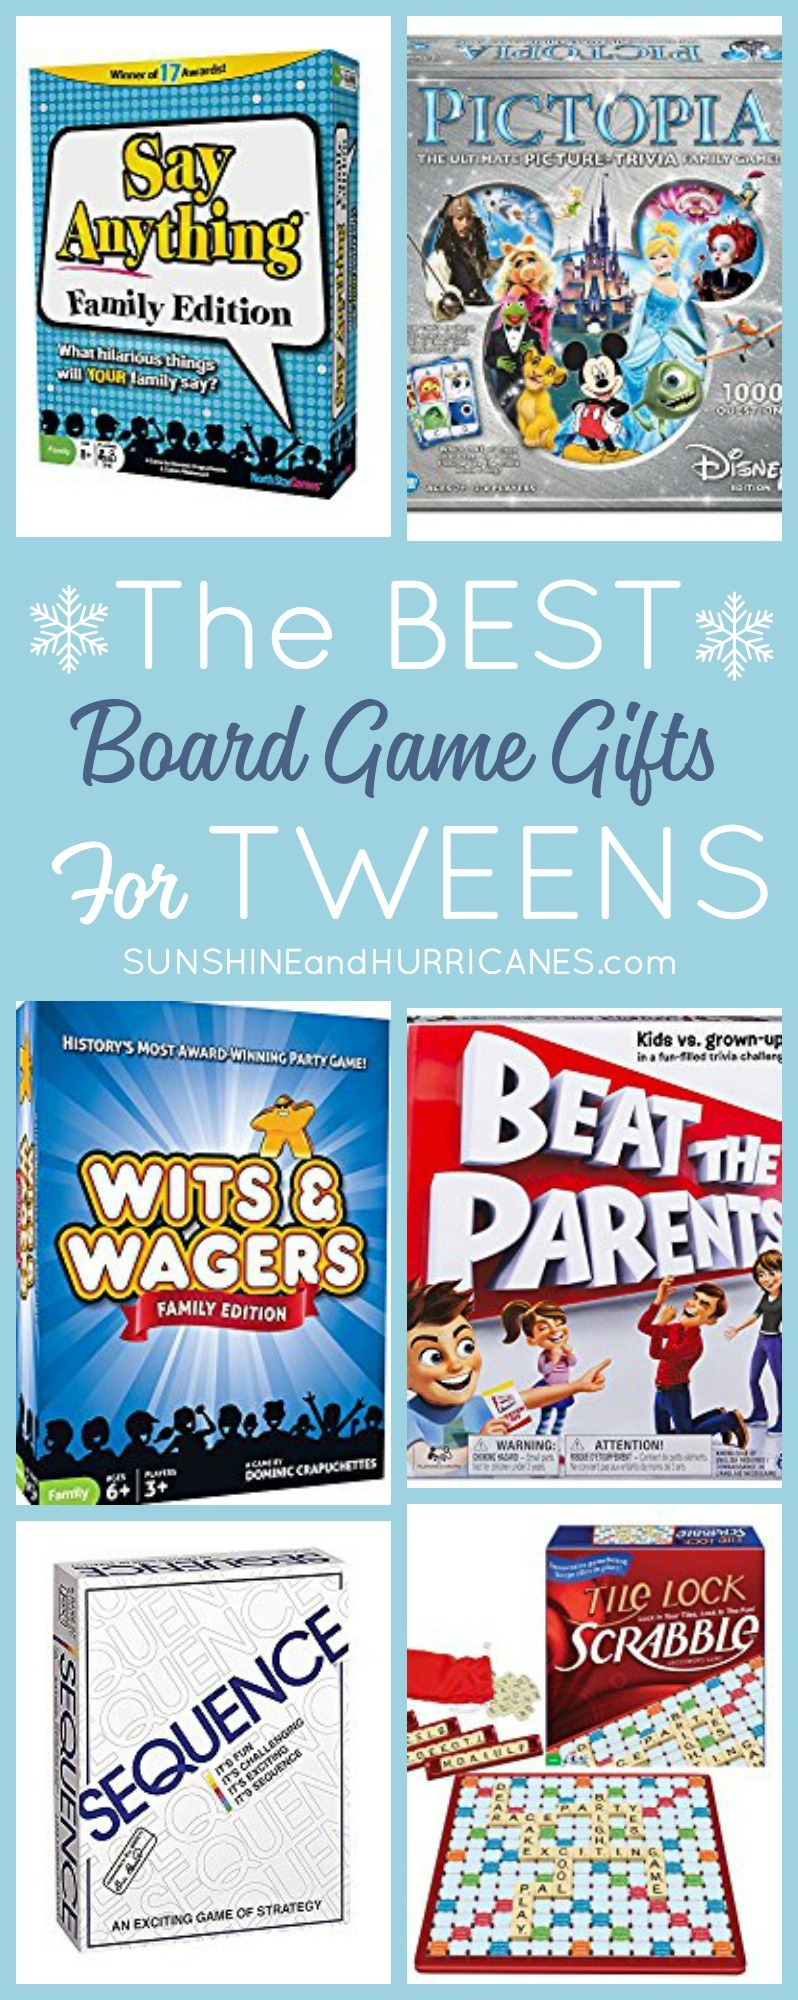 Looking for a great gift idea for your tween? These Board Games for Tweens were chosen by tweens and are sure to be a hit for holiday or birthday gifts.